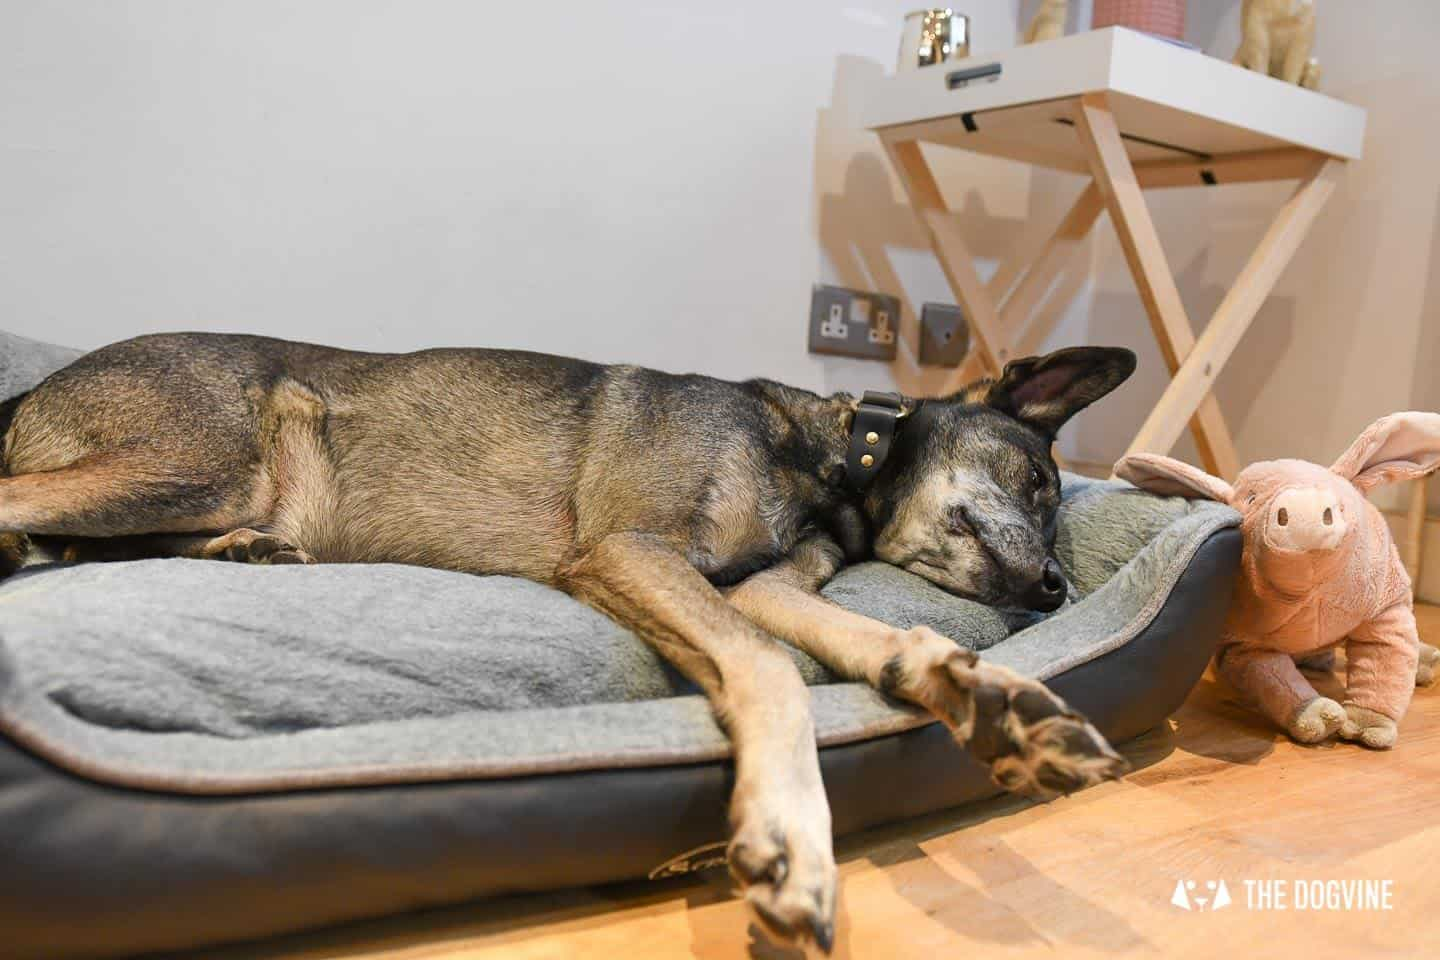 Paws Up For The Scruffs Orthopaedic Dog Bed - Chateau Box Bed Review 19